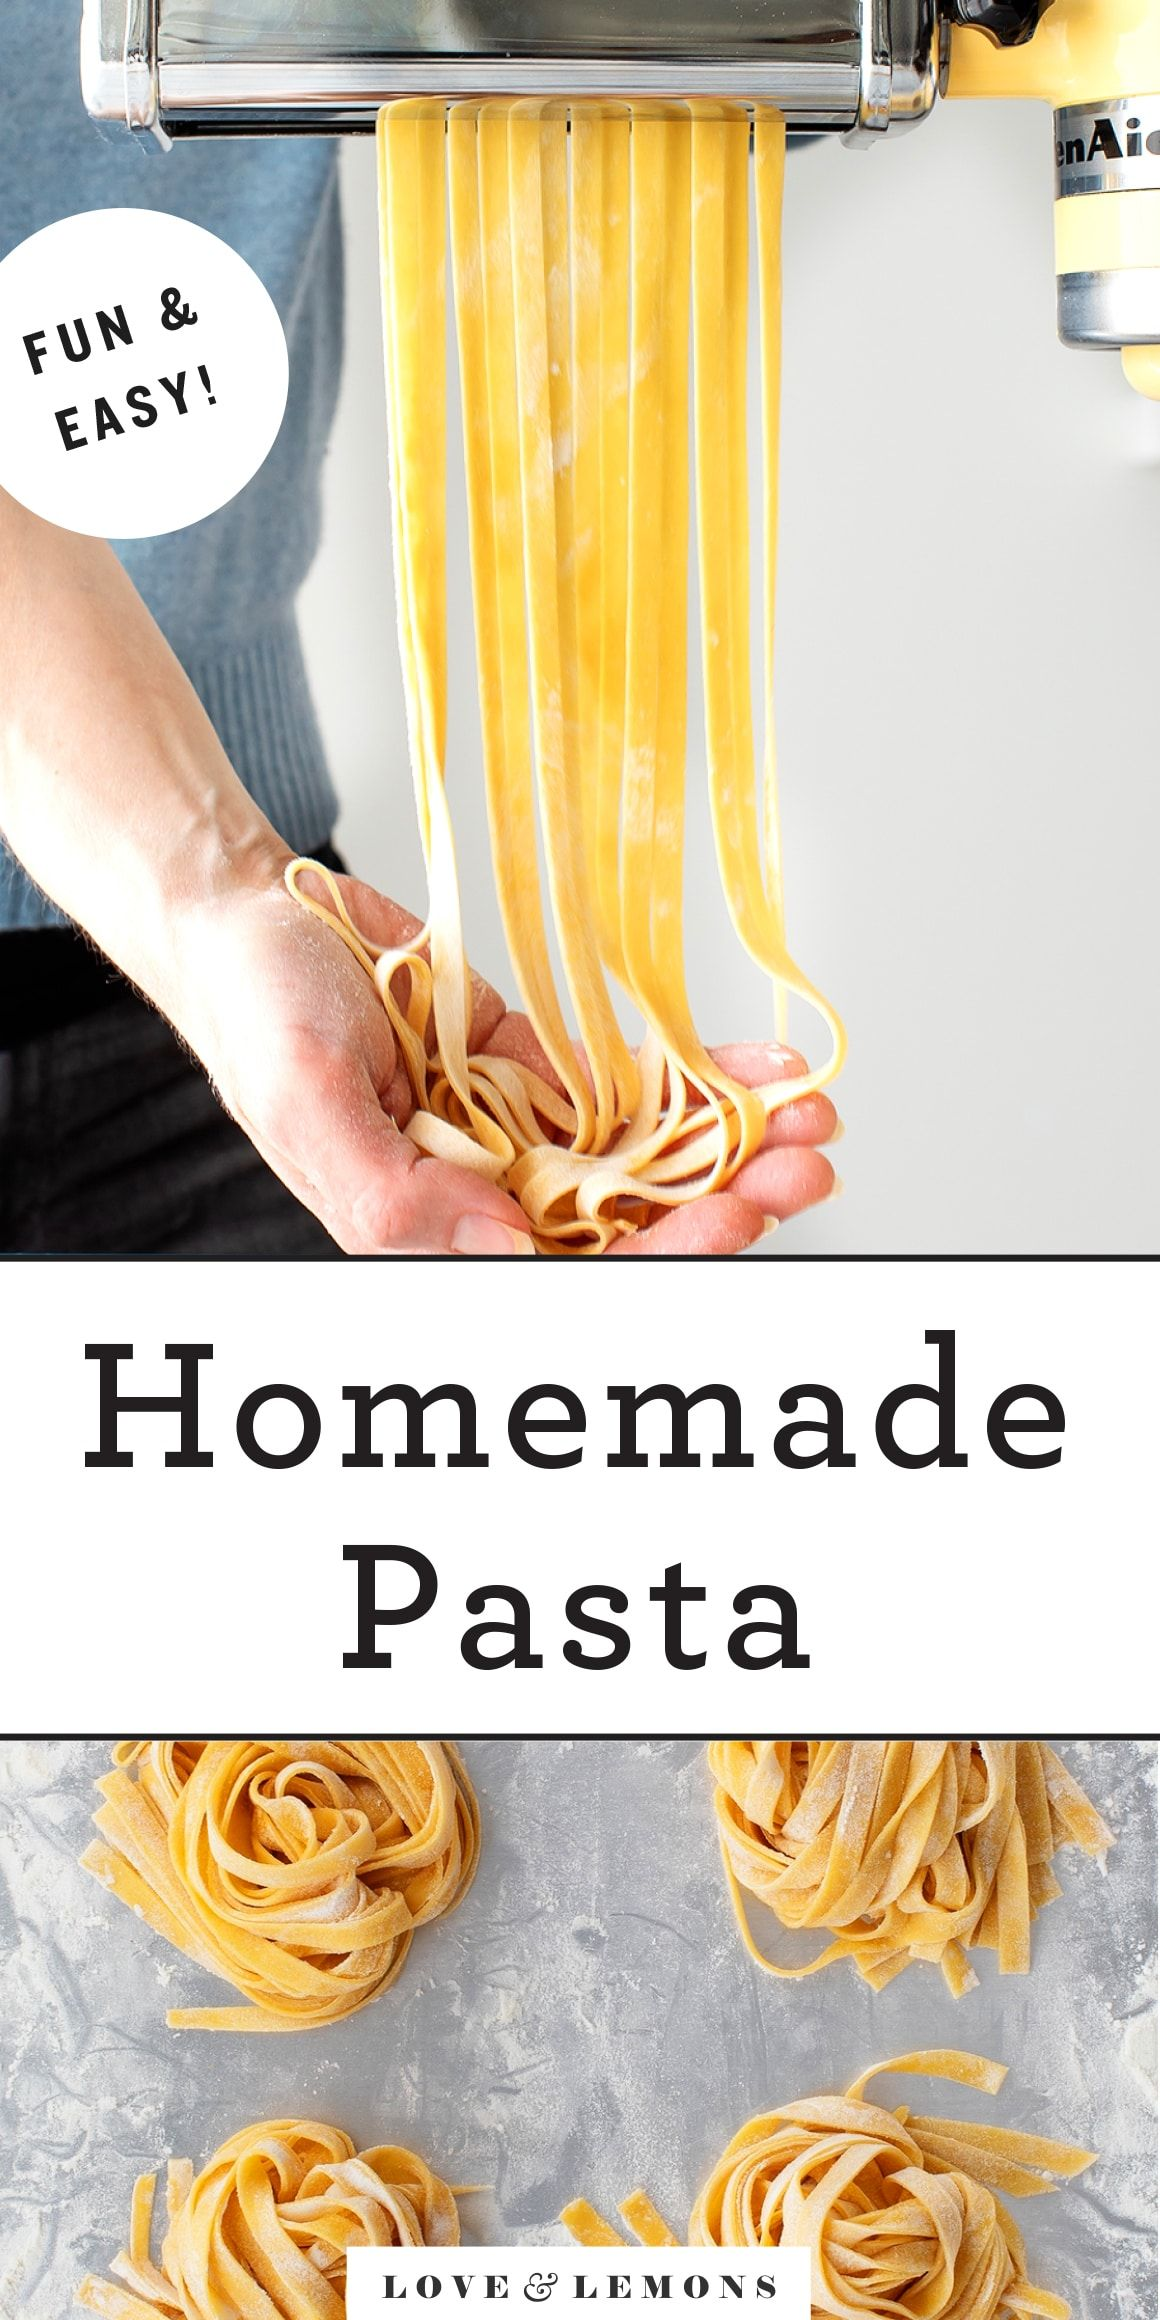 Homemade Pasta - Recipes by Love and Lemons